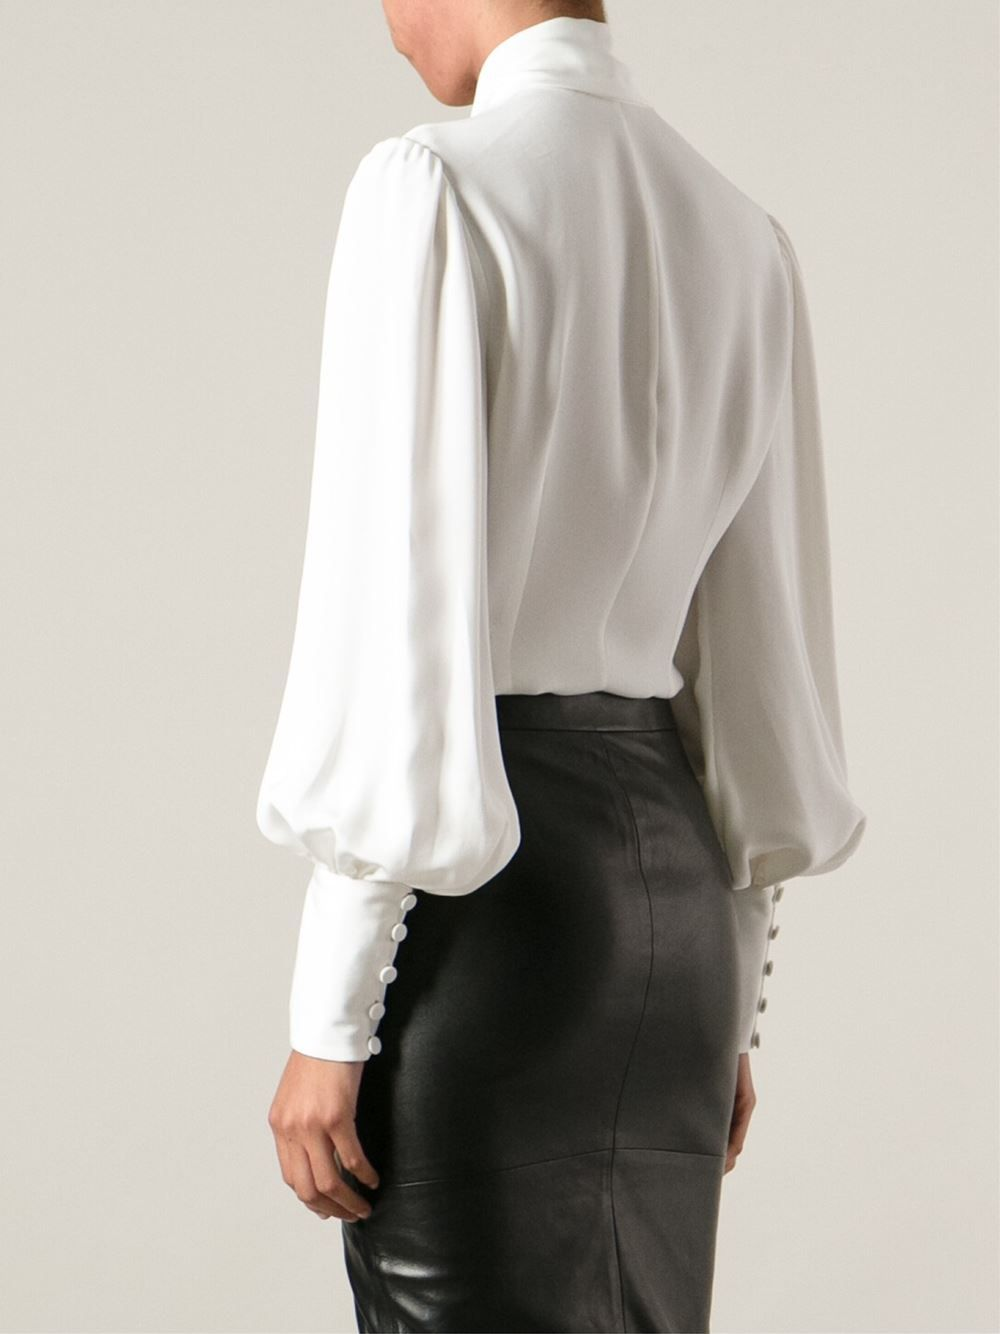 75a299d18c2e7d ... long sleeves and button cuffs. Chic and Fashionable With White Shirt.  alexander mcqueen blouse - Google keresés